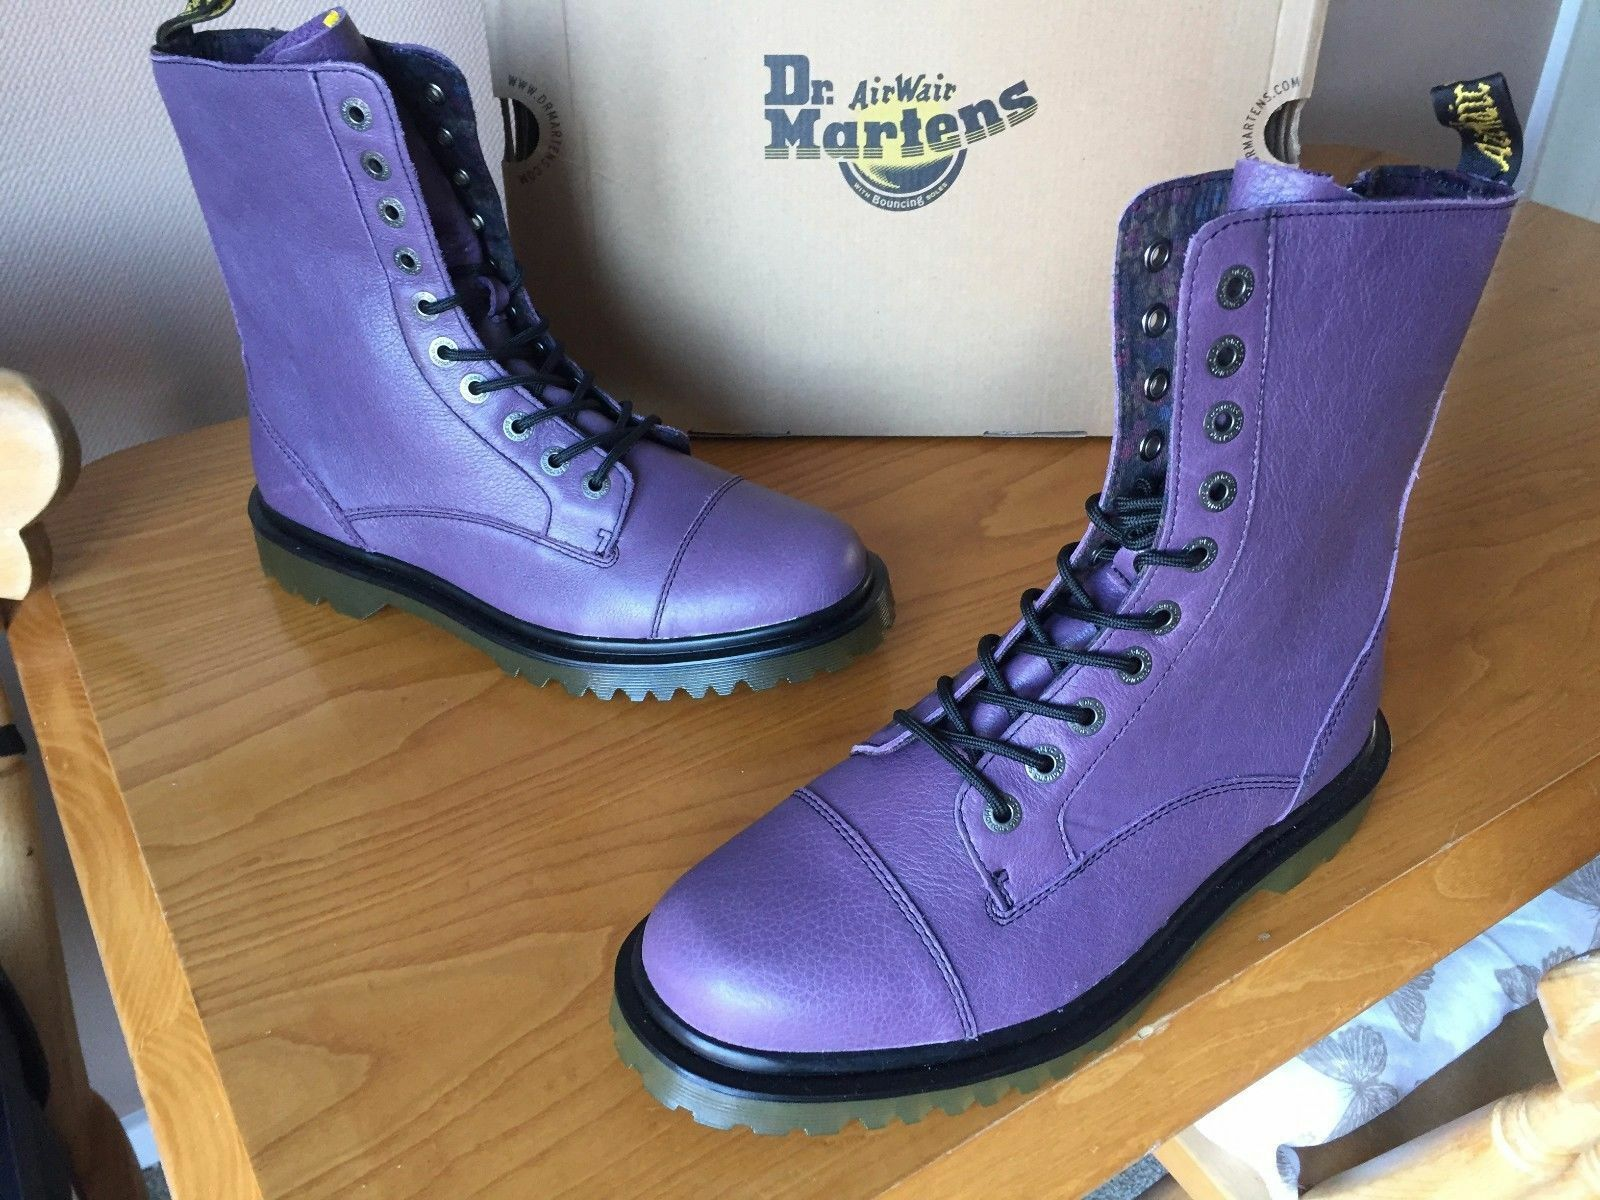 Dr Martens purple Justyna purplec leather boots UK 9 EU 43